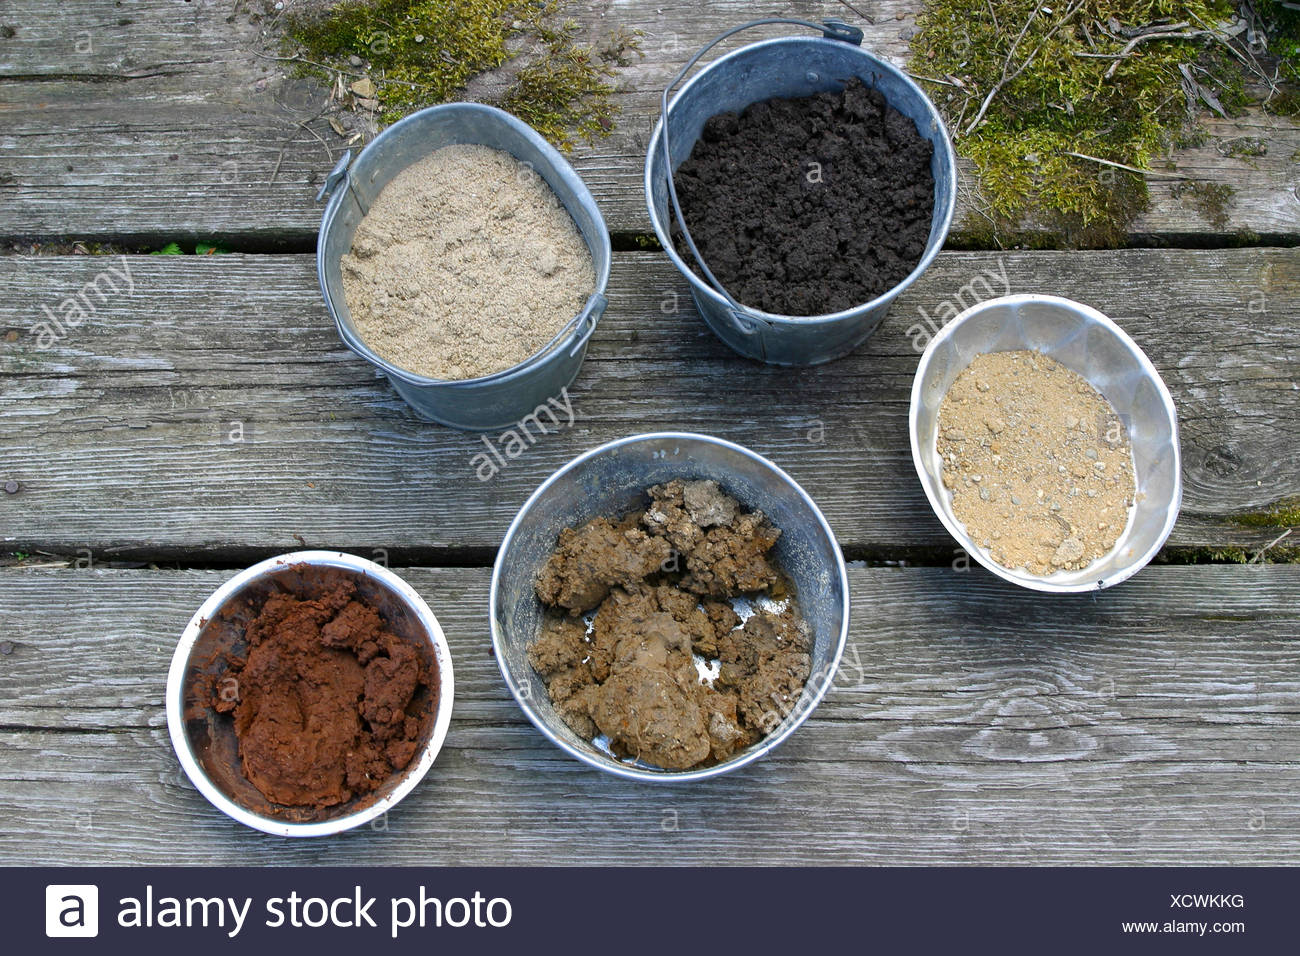 dishes with various colours of soils - Stock Image